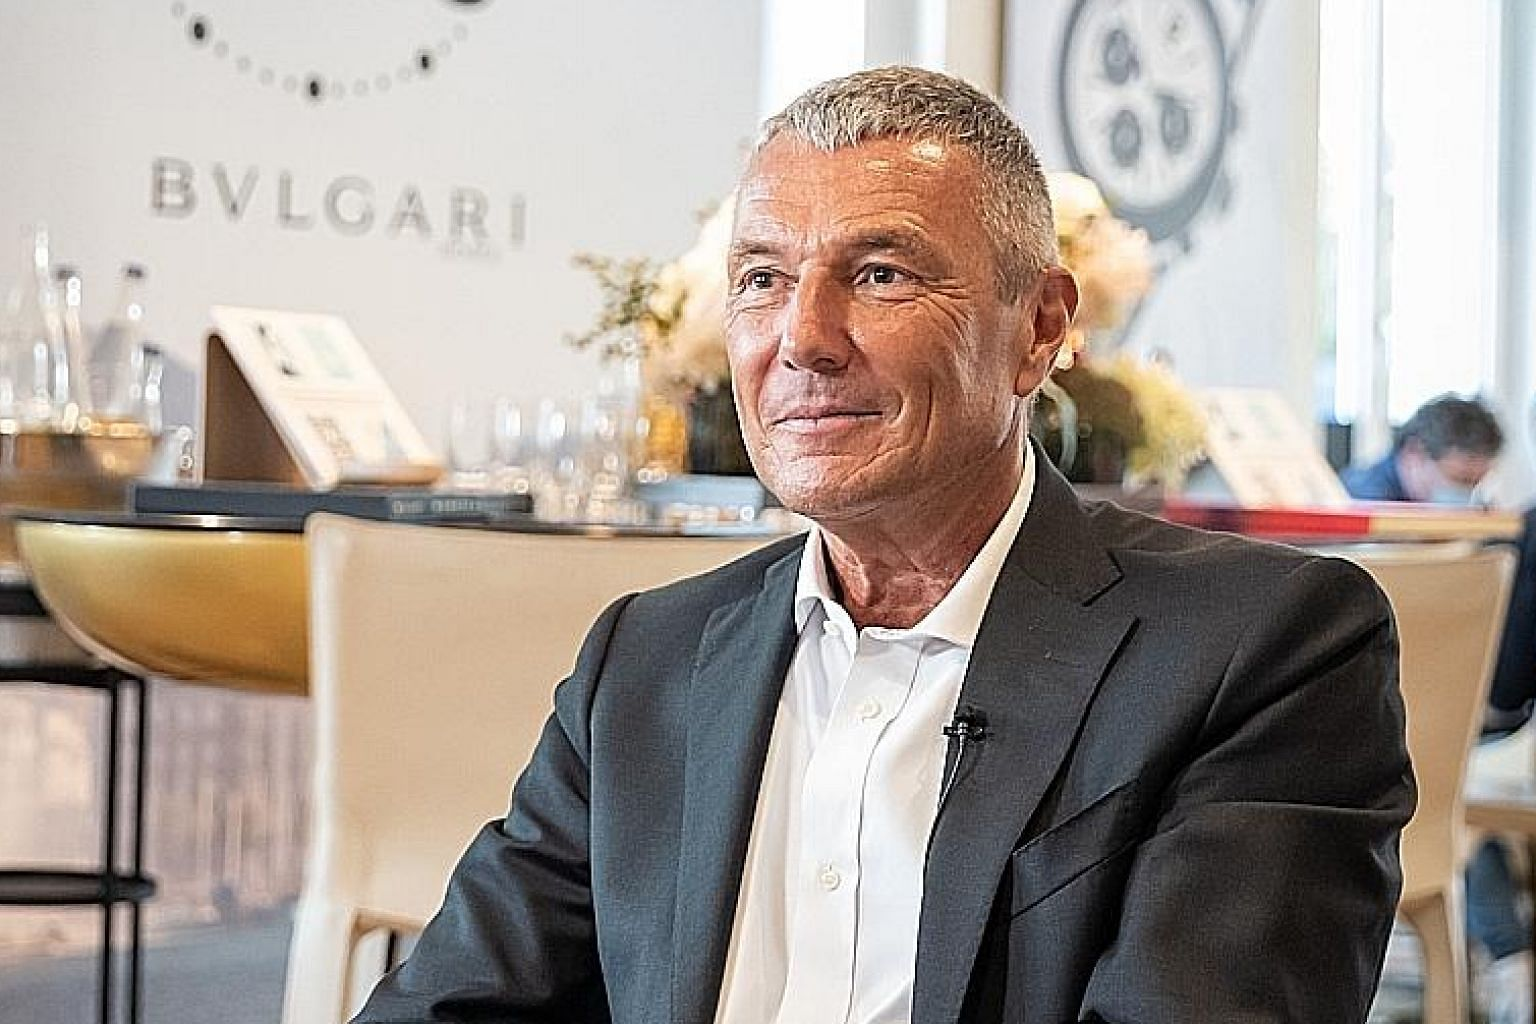 Bvlgari's group chief executive Jean-Christophe Babin played a key role in organising Geneva Watch Days last month, an industry fair which combined physical and digital tools to help watch brands promote themselves during the pandemic.